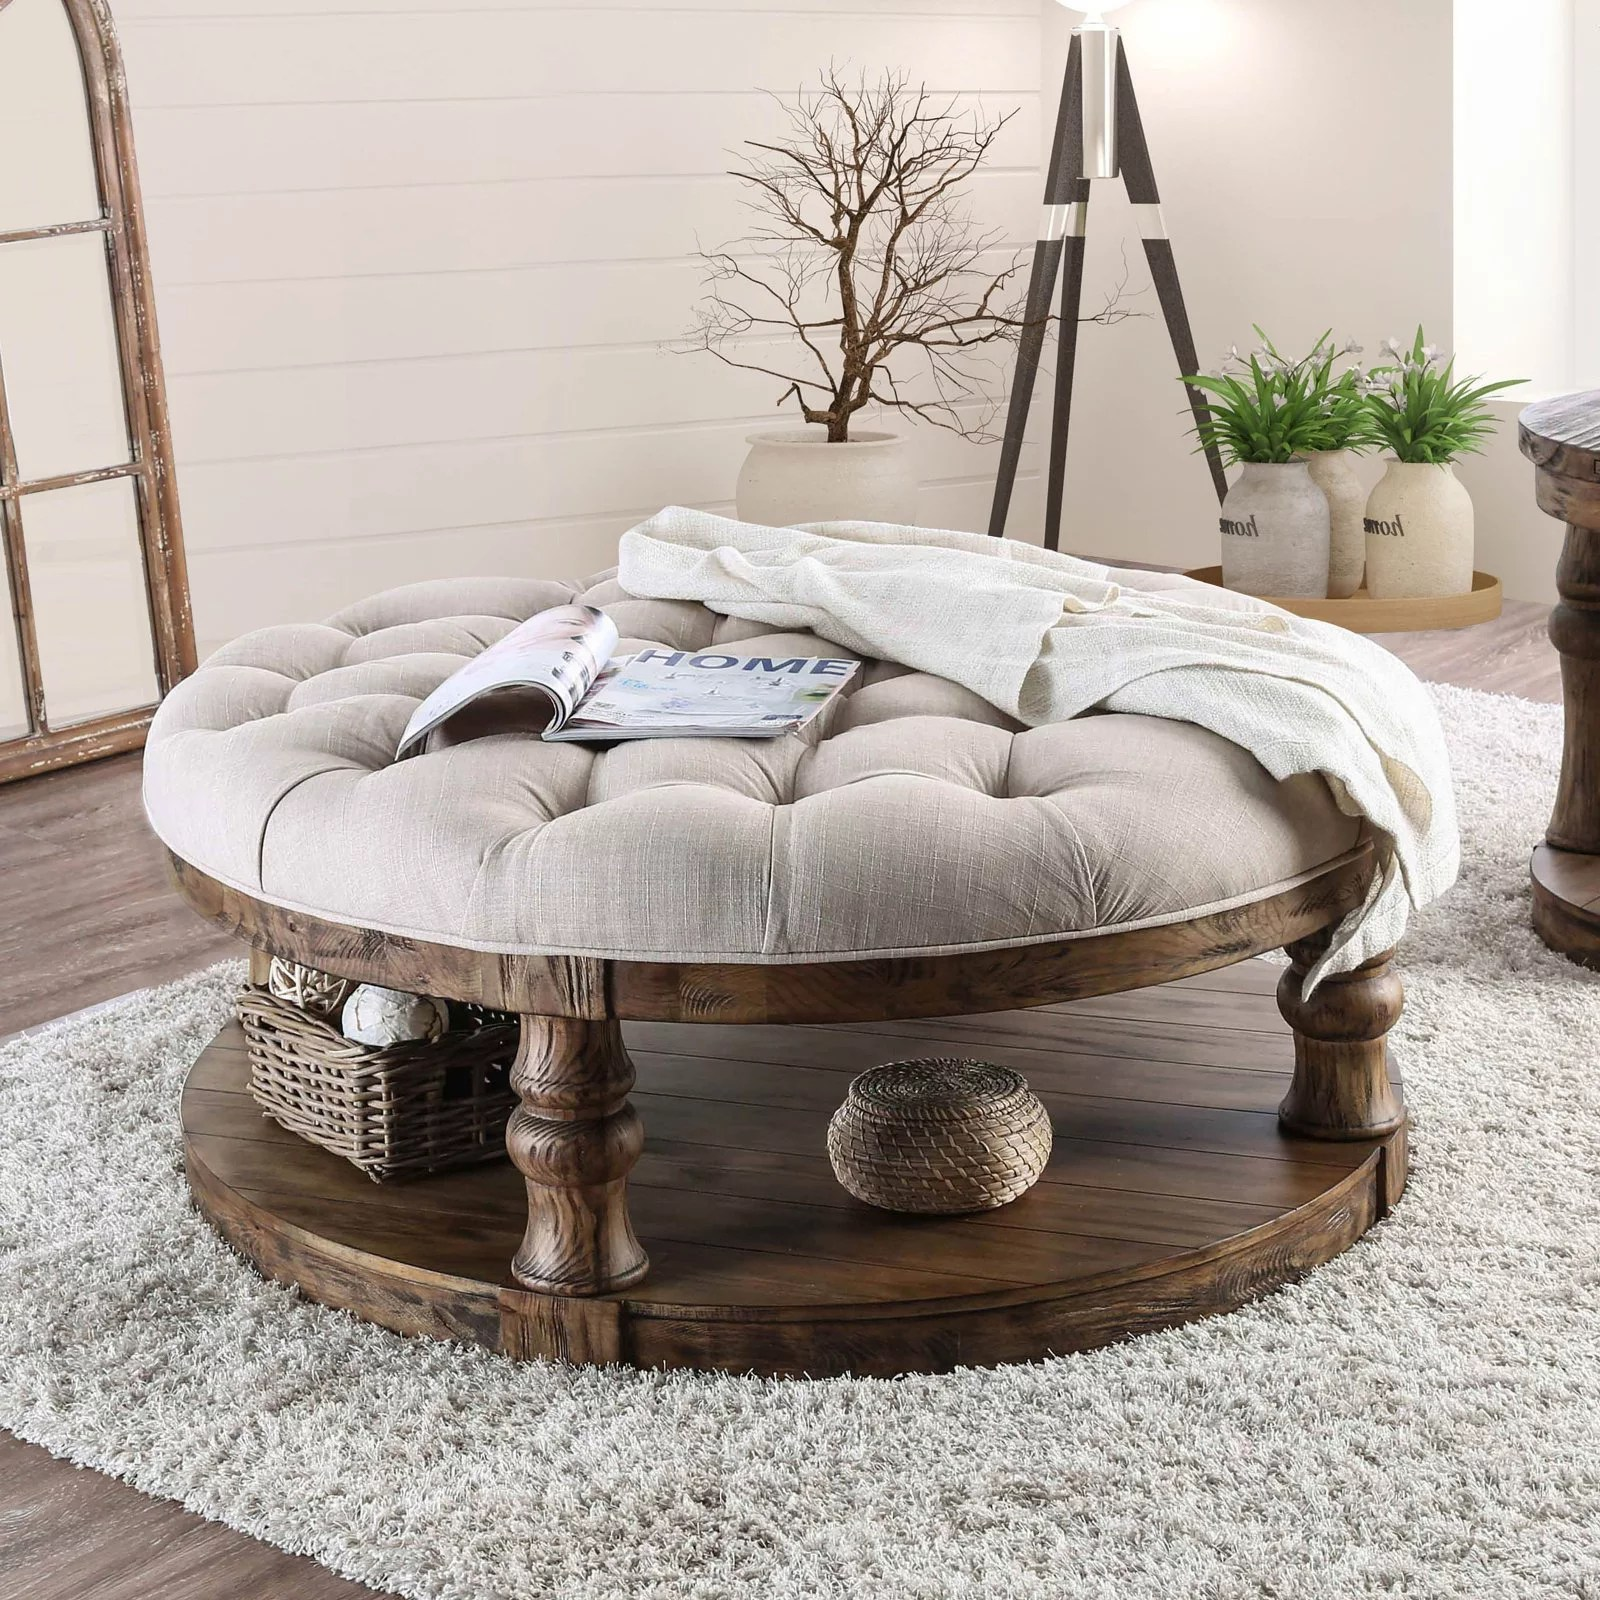 furniture of america tanenbaum rustic round coffee table ottoman